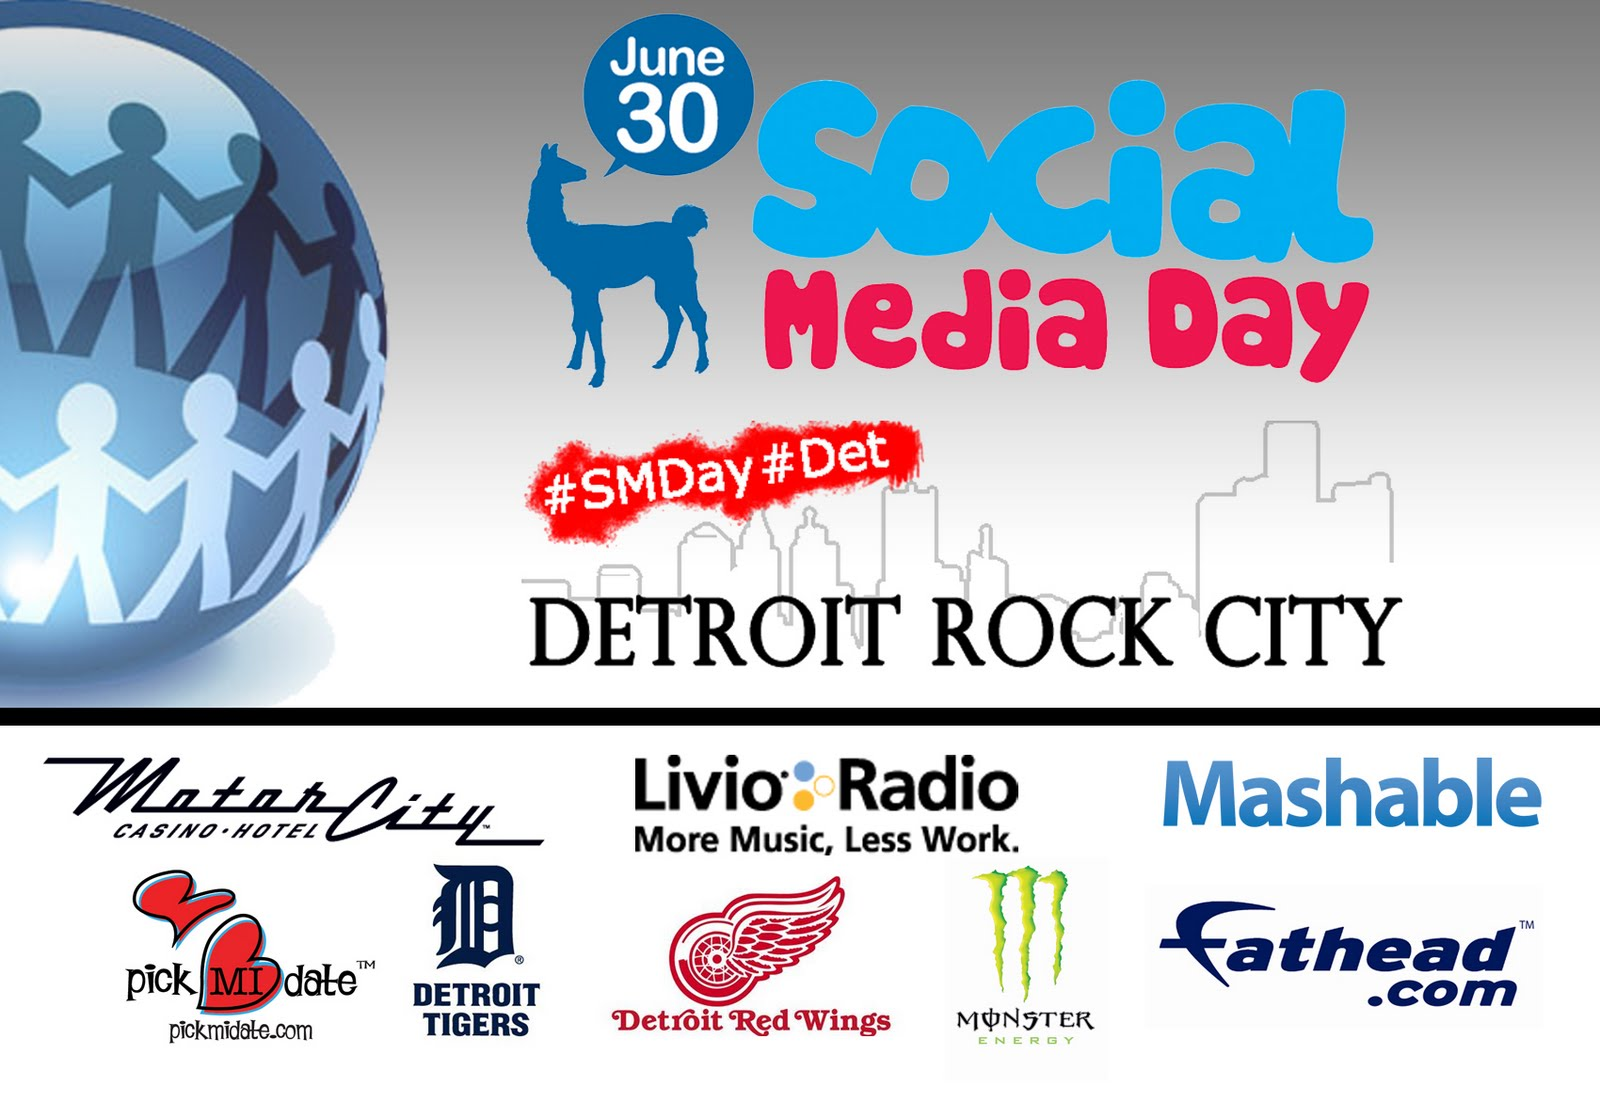 Detroit Social Media Day June 30, 2011 Sponsors